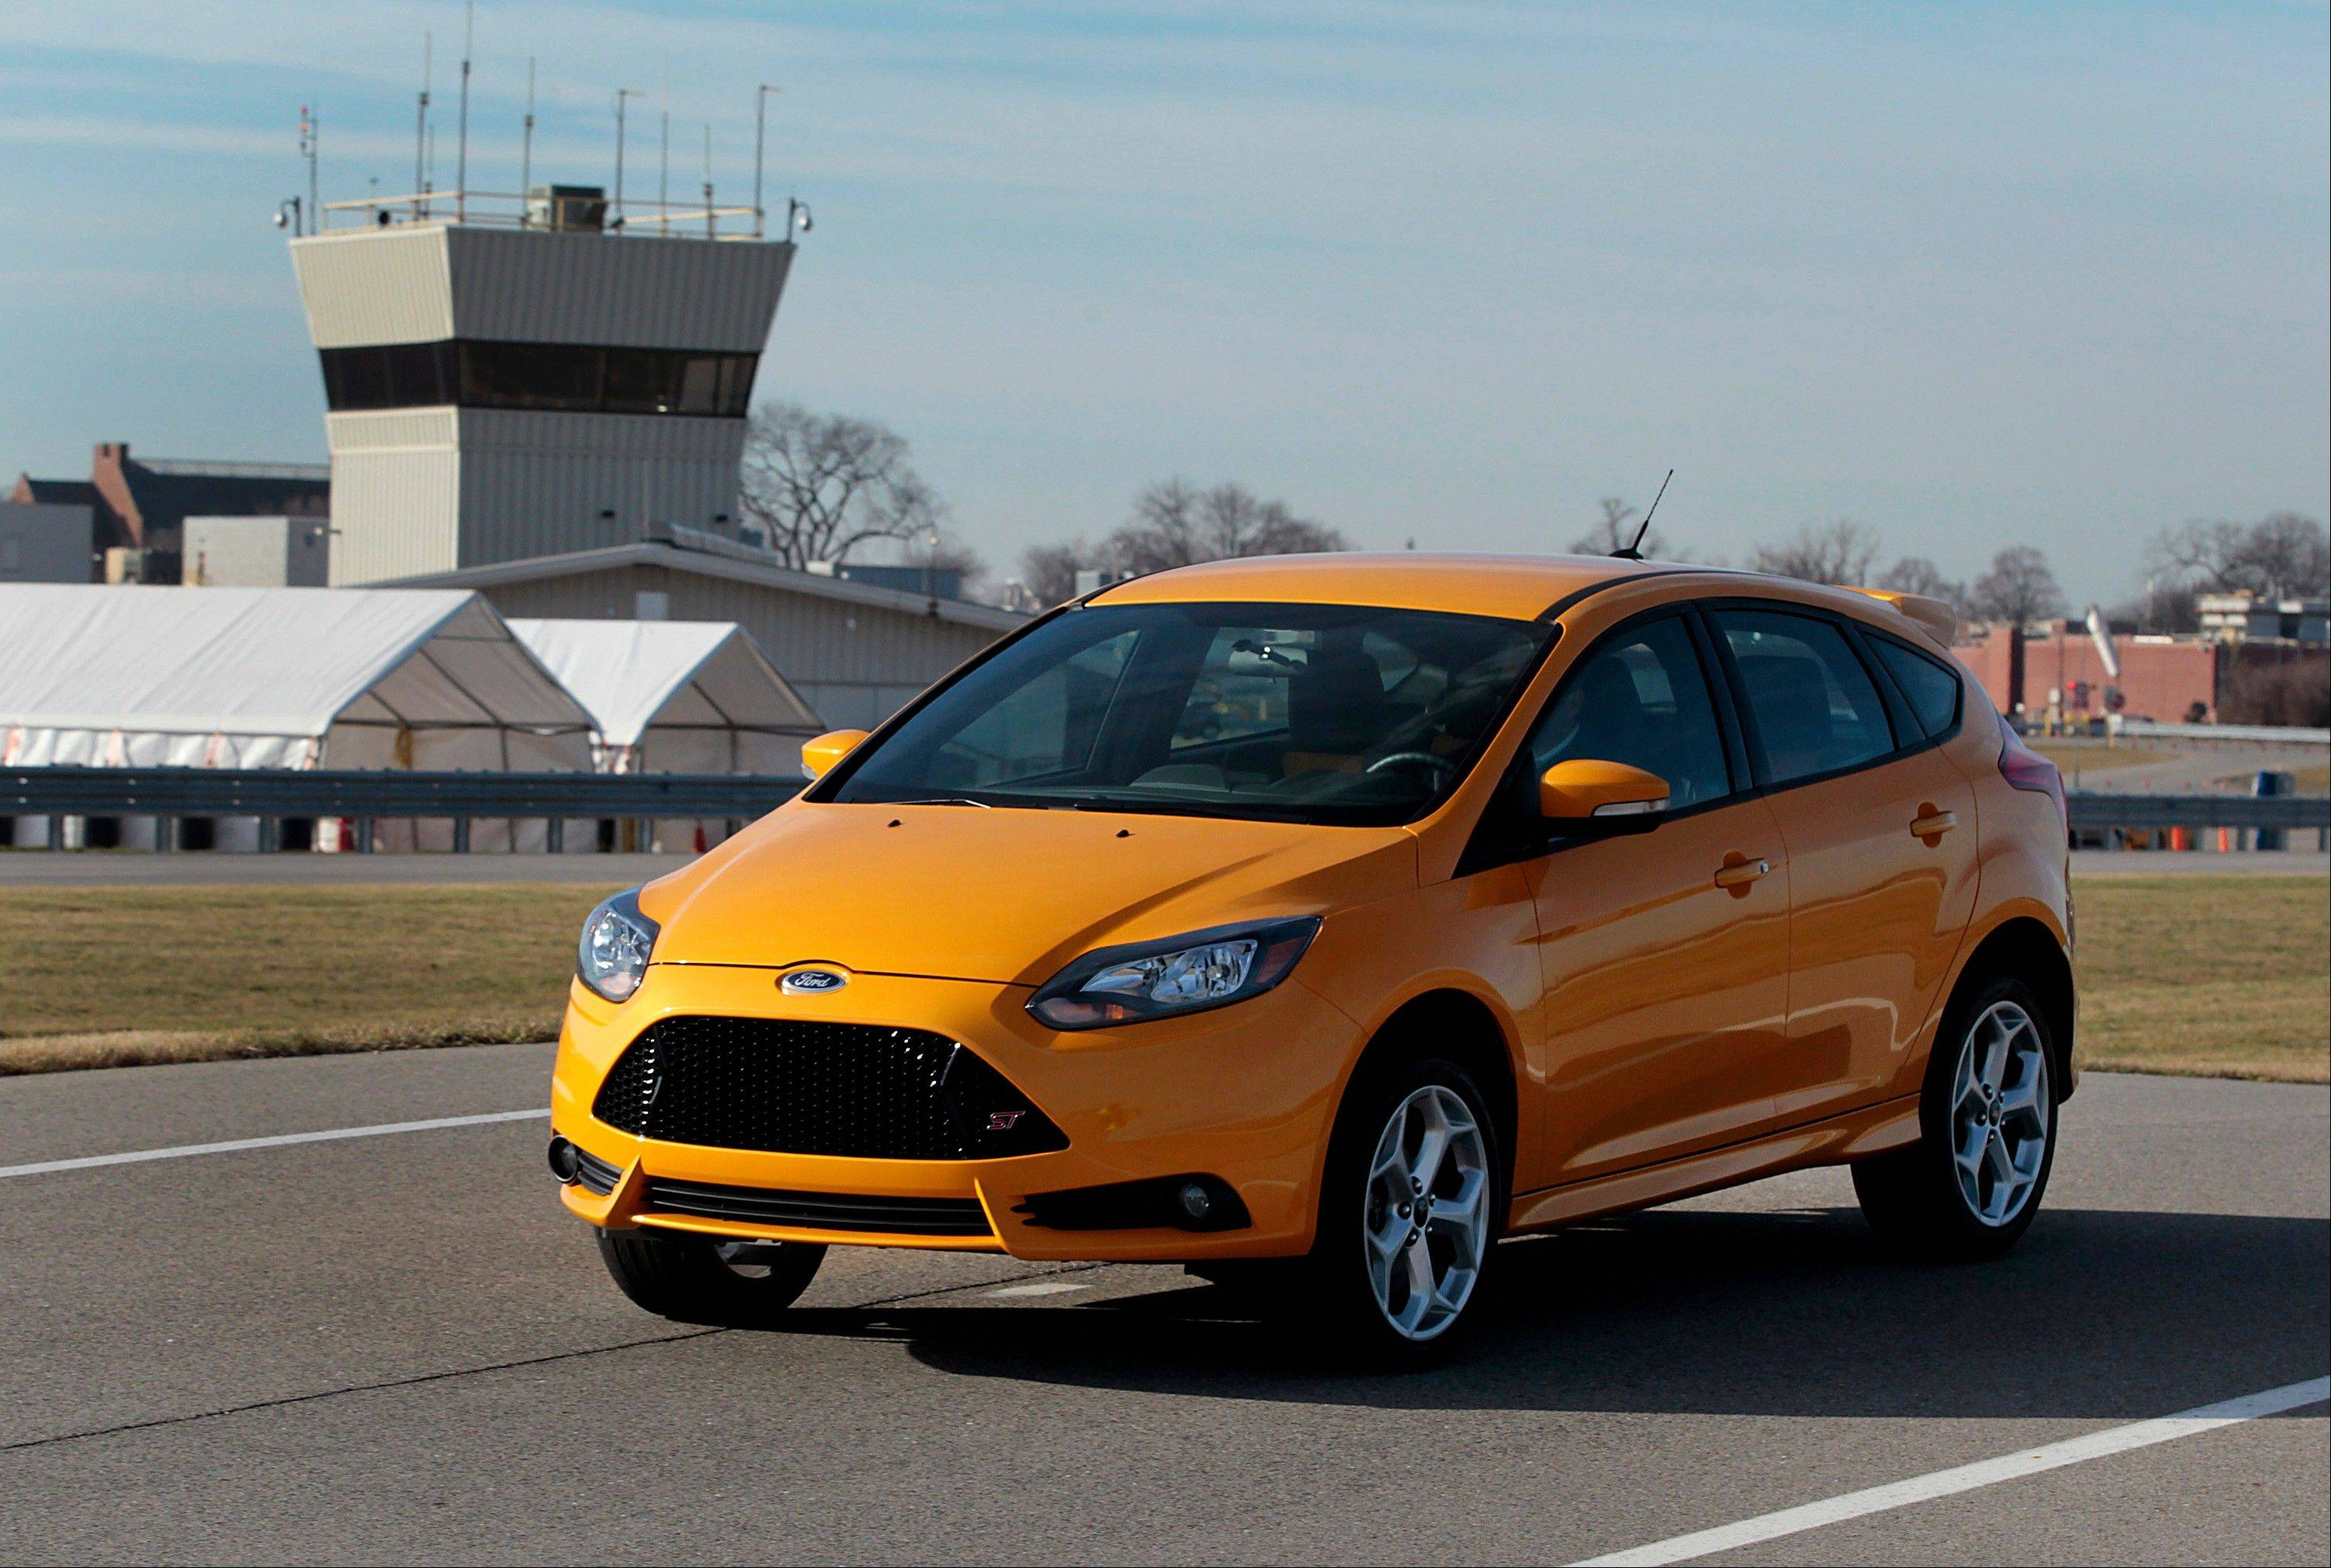 Ford�s rankings suffered because of problems with its MyFord Touch and MyLincoln Touch audio, entertainment and navigation systems and defects with models such as the Explorer sport-utility vehicle and Fiesta and Focus cars, Consumer Reports said in October.